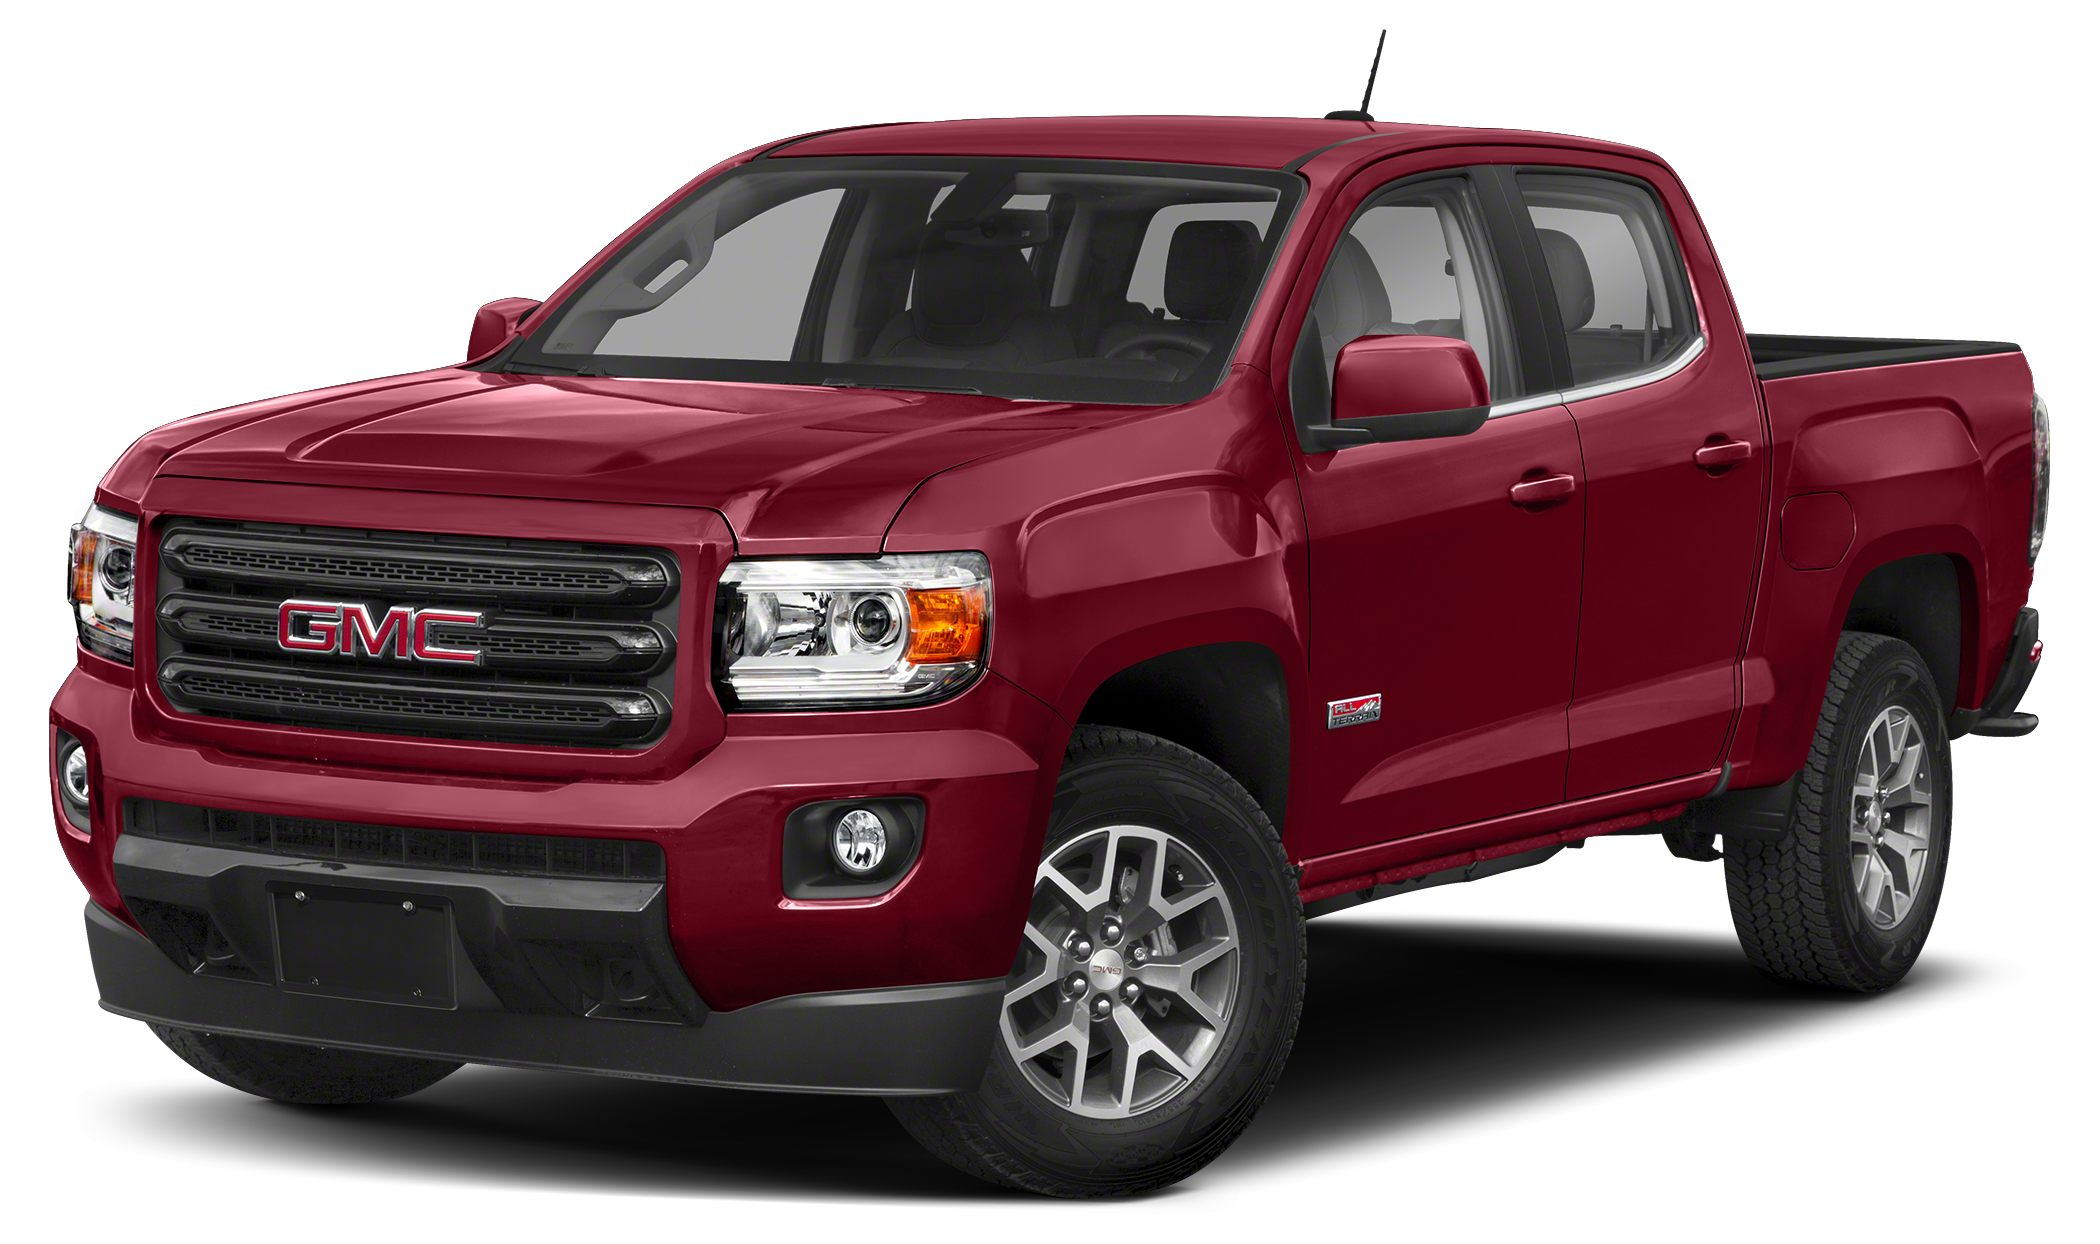 2018 GMC Canyon SLT Make sure to get your hands on this 2018 GMC Canyon SLT with a remote starter